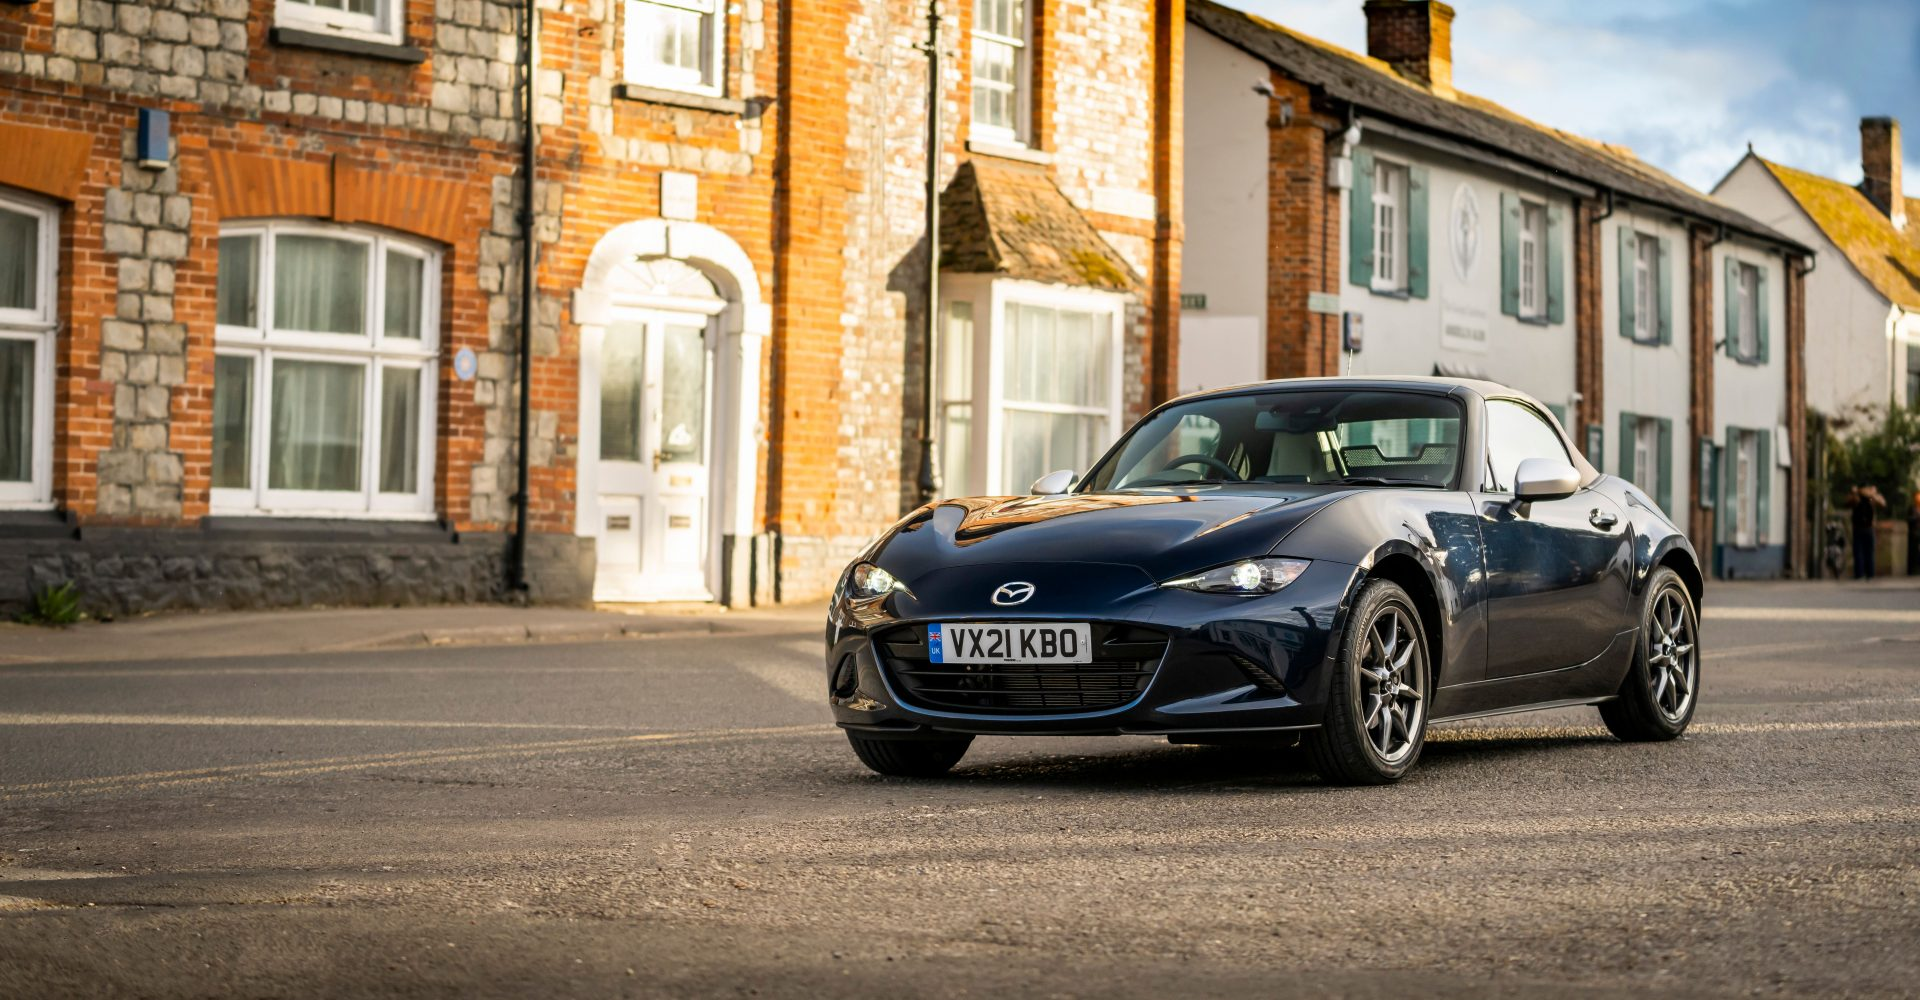 Mazda MX-5 range expanded with limited edition 'Sport Venture' model